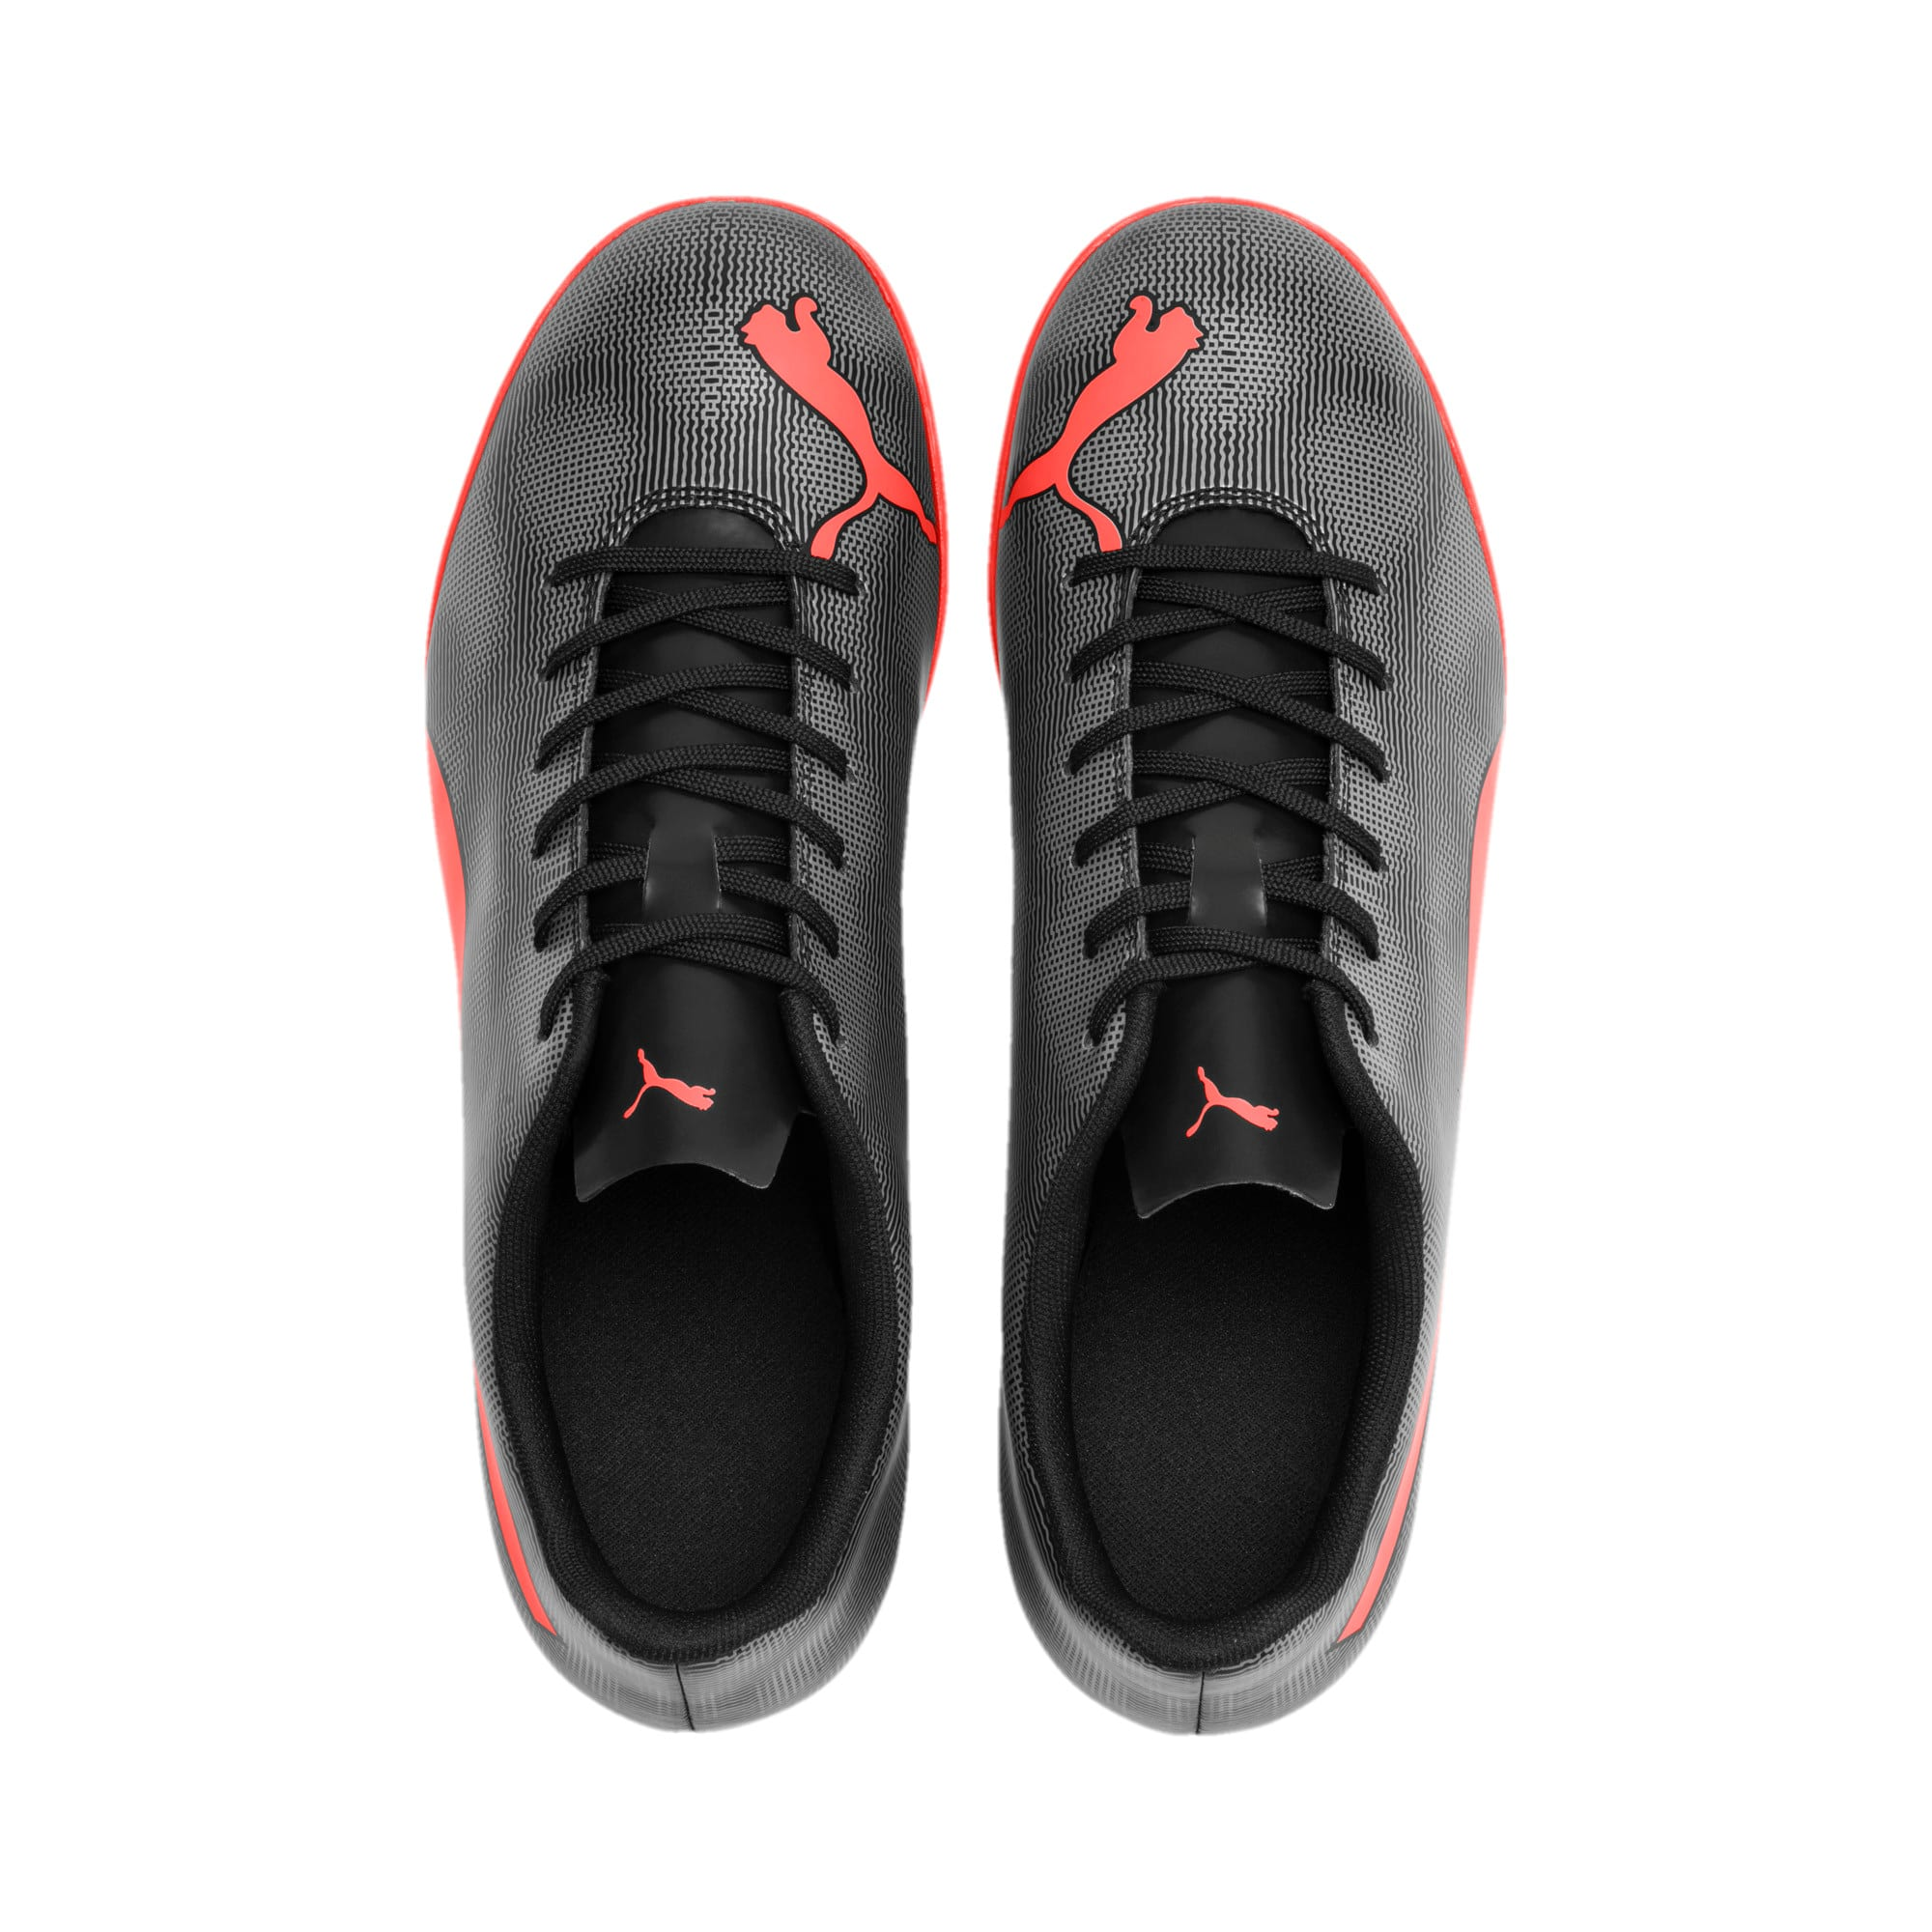 Thumbnail 8 of Rapido TT Men's Football Boots, Black-Nrgy Red-Aged Silver, medium-IND